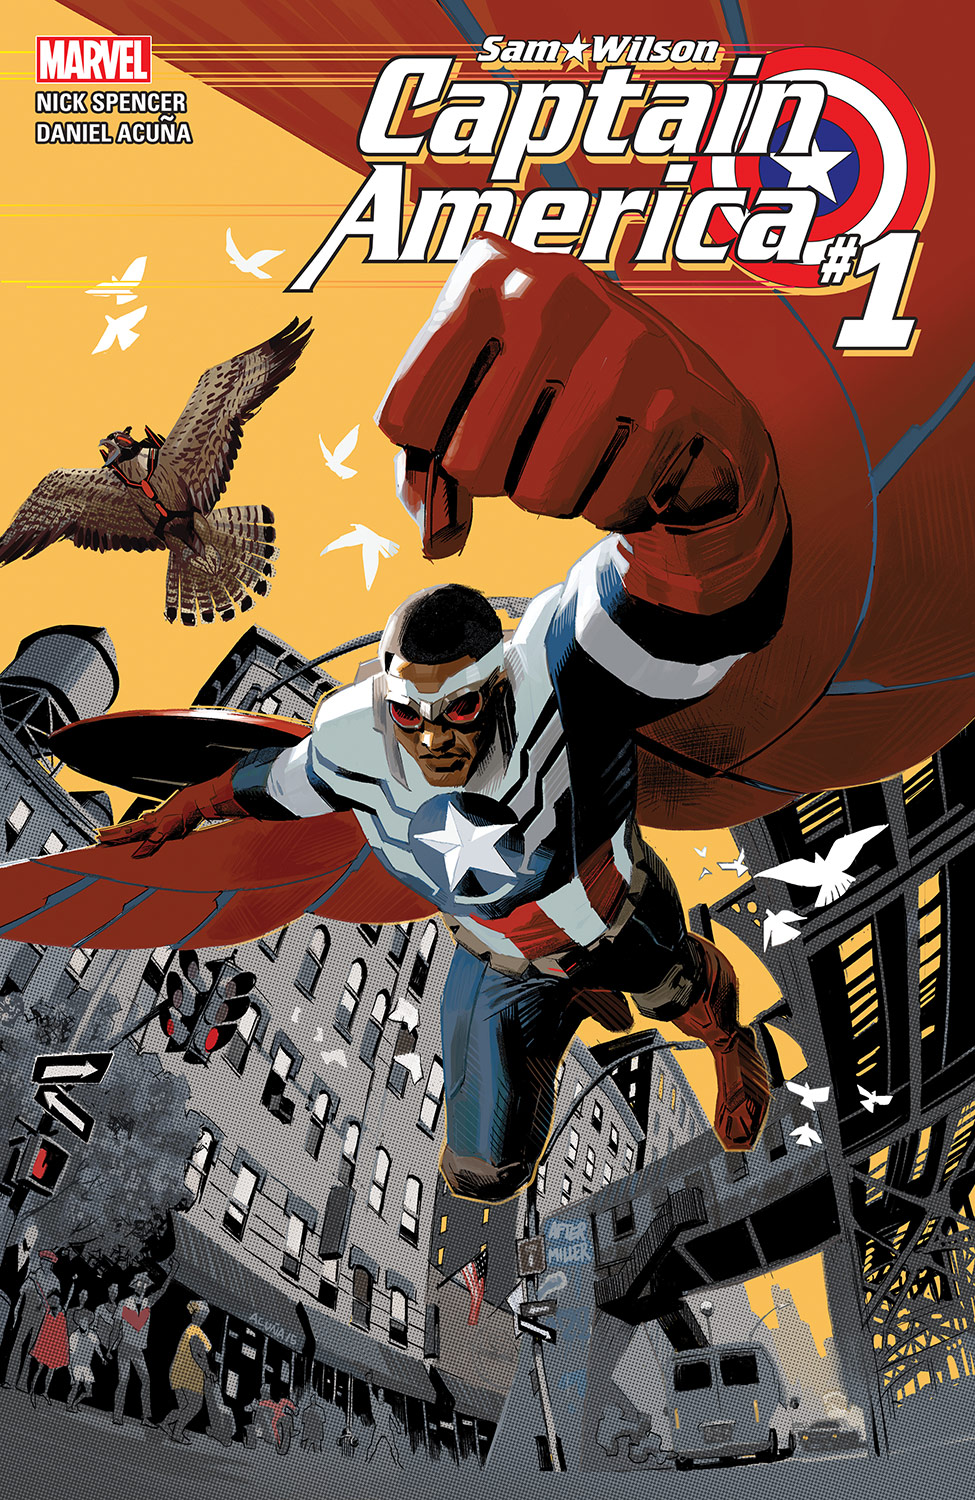 Image result for sam wilson captain america 1